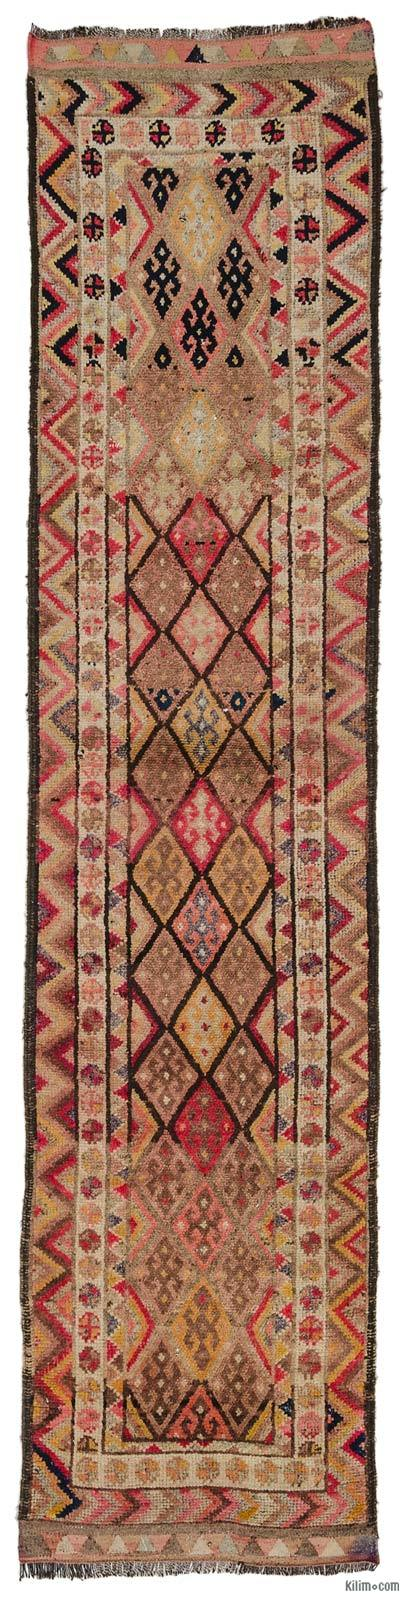 "Multicolor Vintage Turkish Runner Rug - 2' 10"" x 11' 11"" (34 in. x 143 in.)"